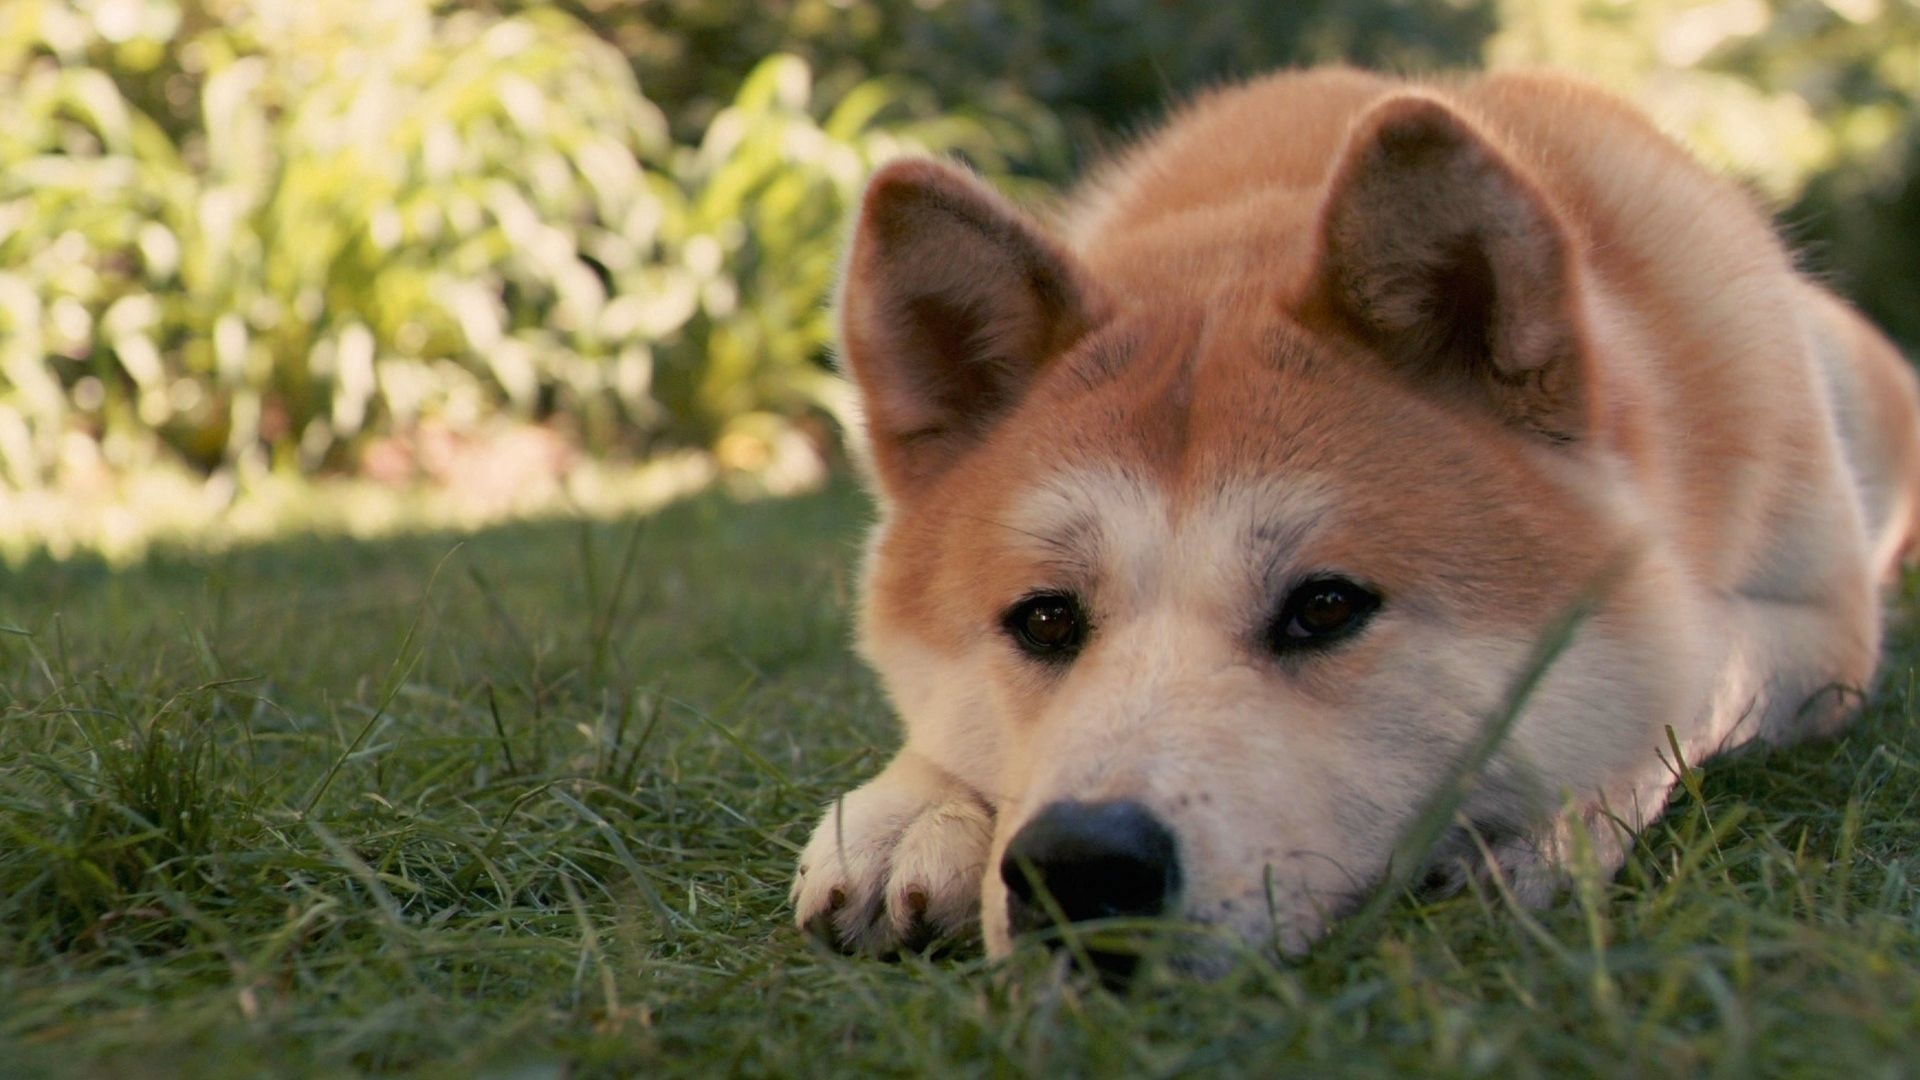 120293 download wallpaper Animals, Akita Inu, Dog, Hachiko, Sadness, Sorrow, To Lie Down, Lie, Grass screensavers and pictures for free